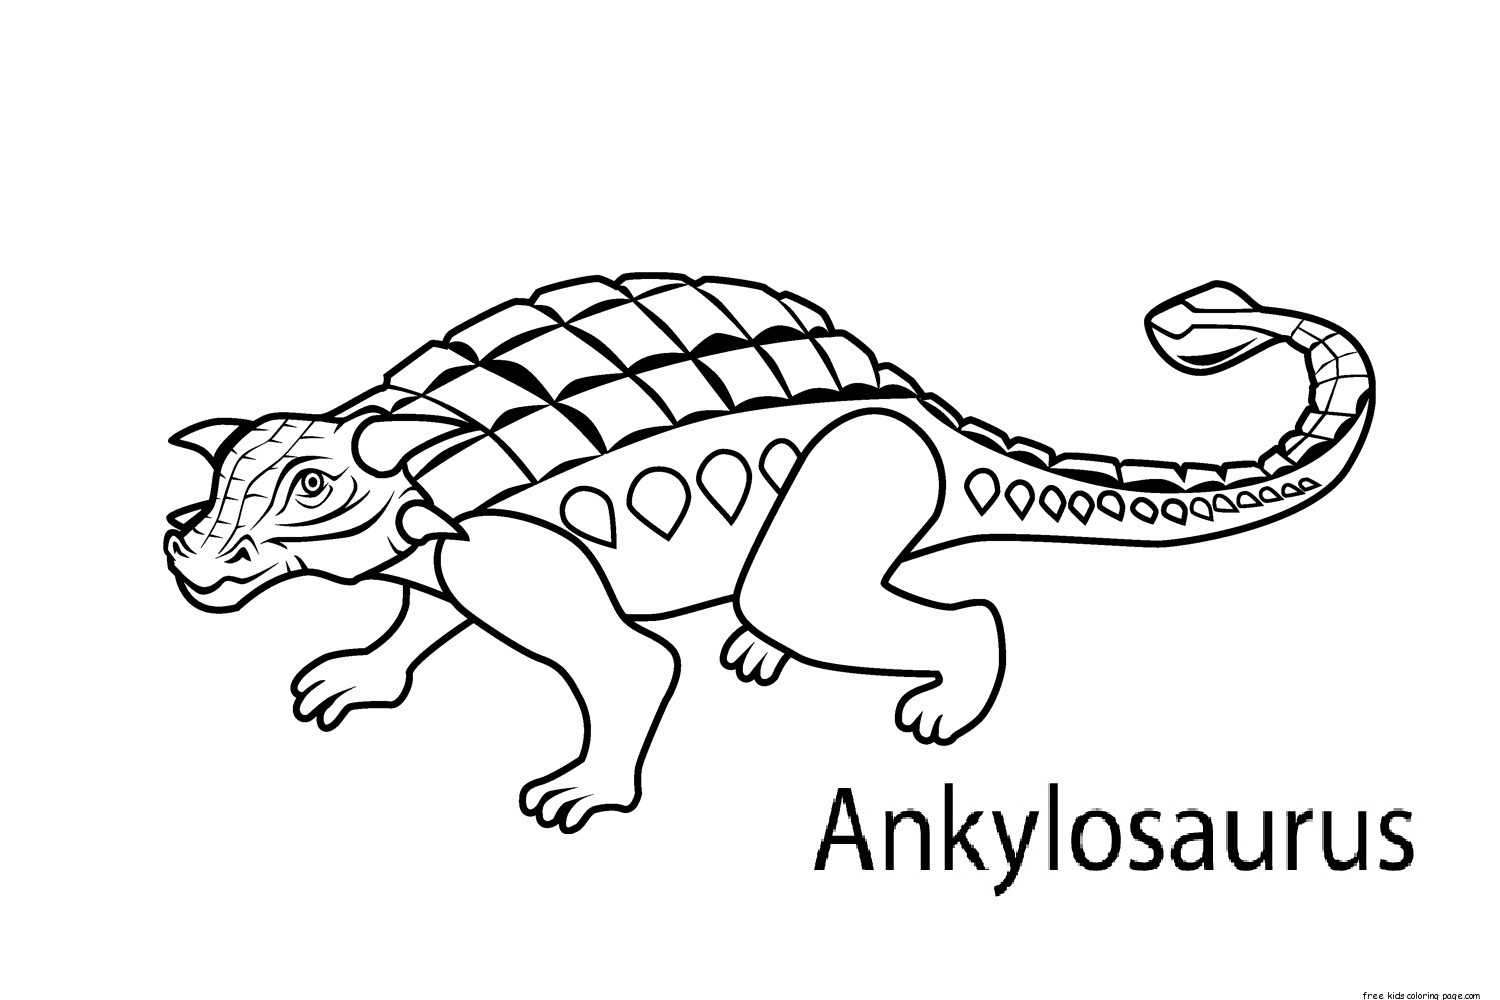 dinosaur print out coloring pages printable dinosaur coloring pages for kids cool2bkids pages print dinosaur out coloring